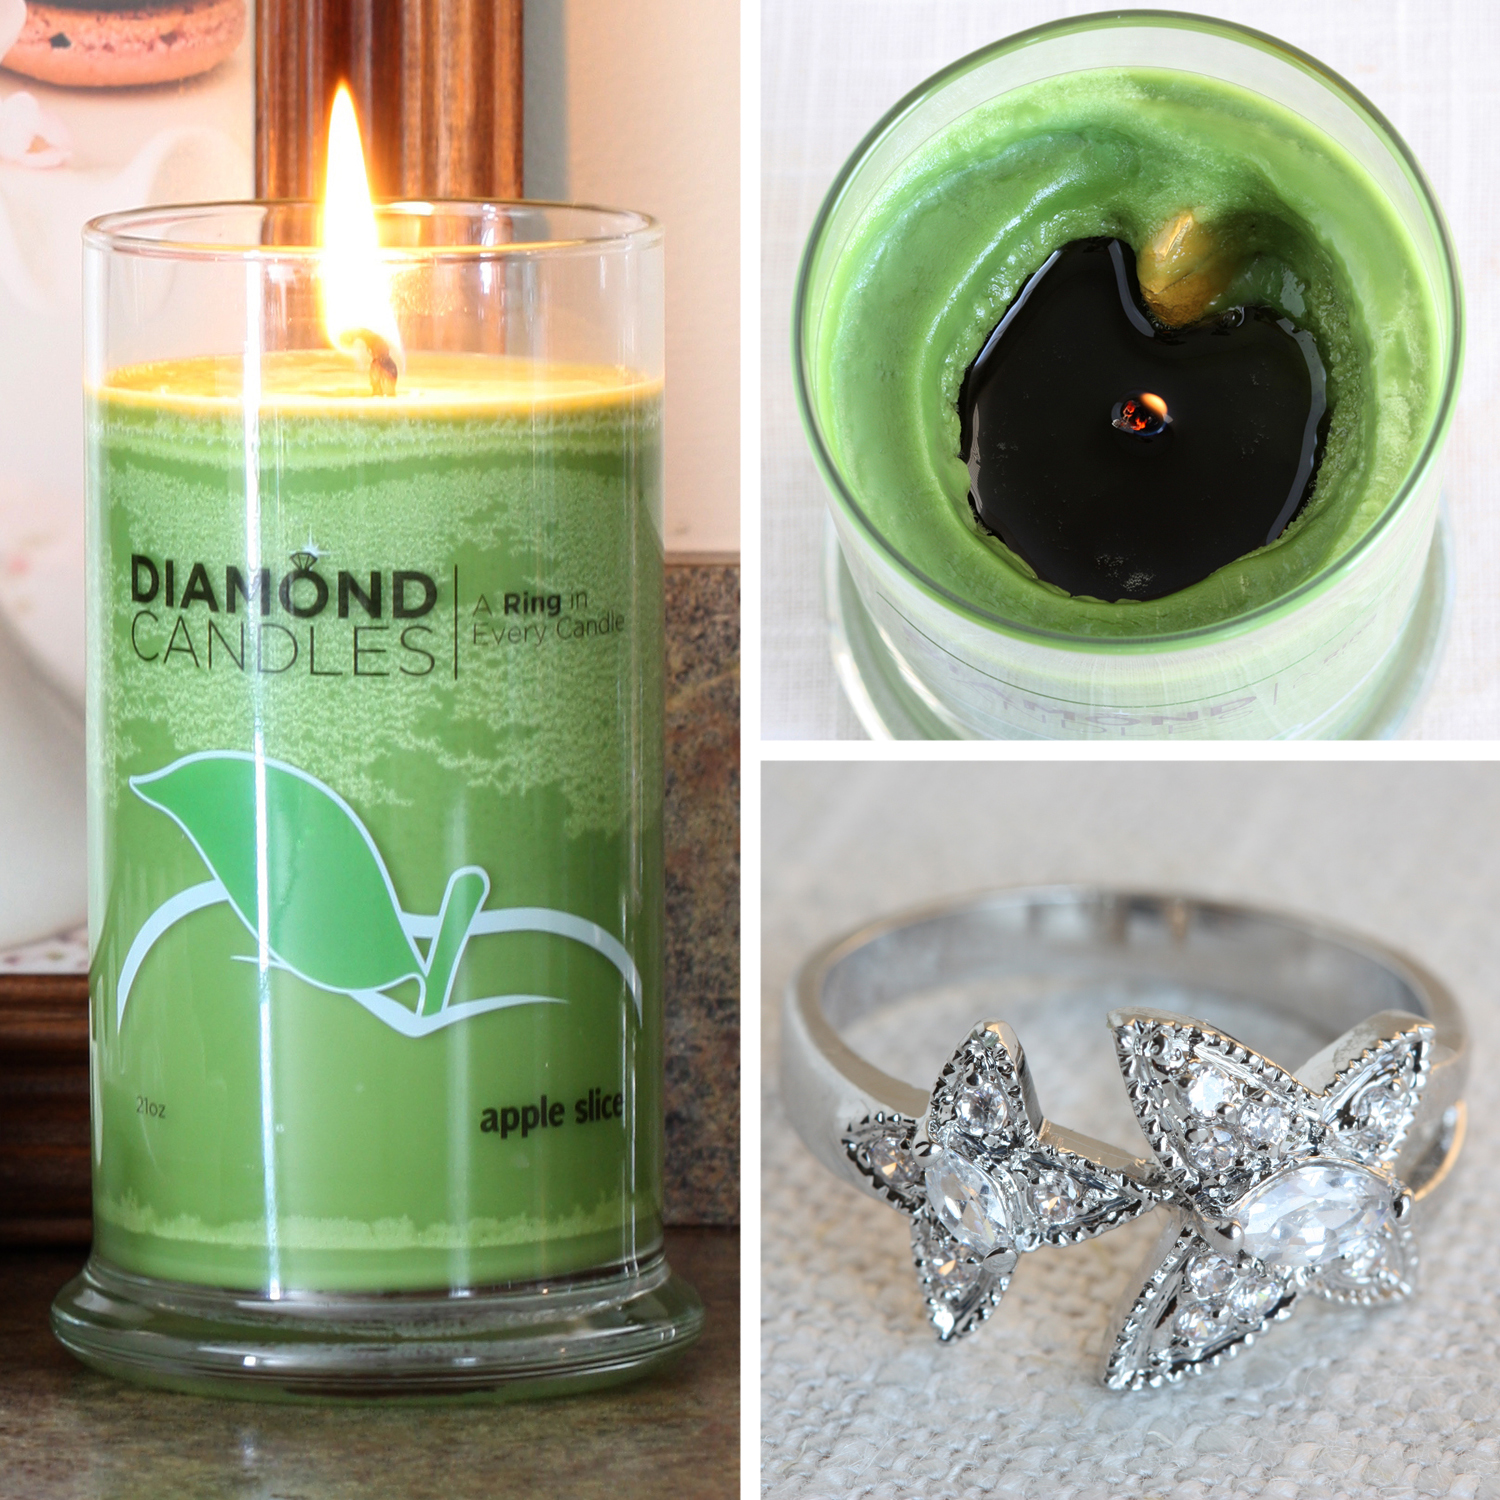 Candles With Gifts Inside That Winsome Girl Diamond Candles Review And Giveaway